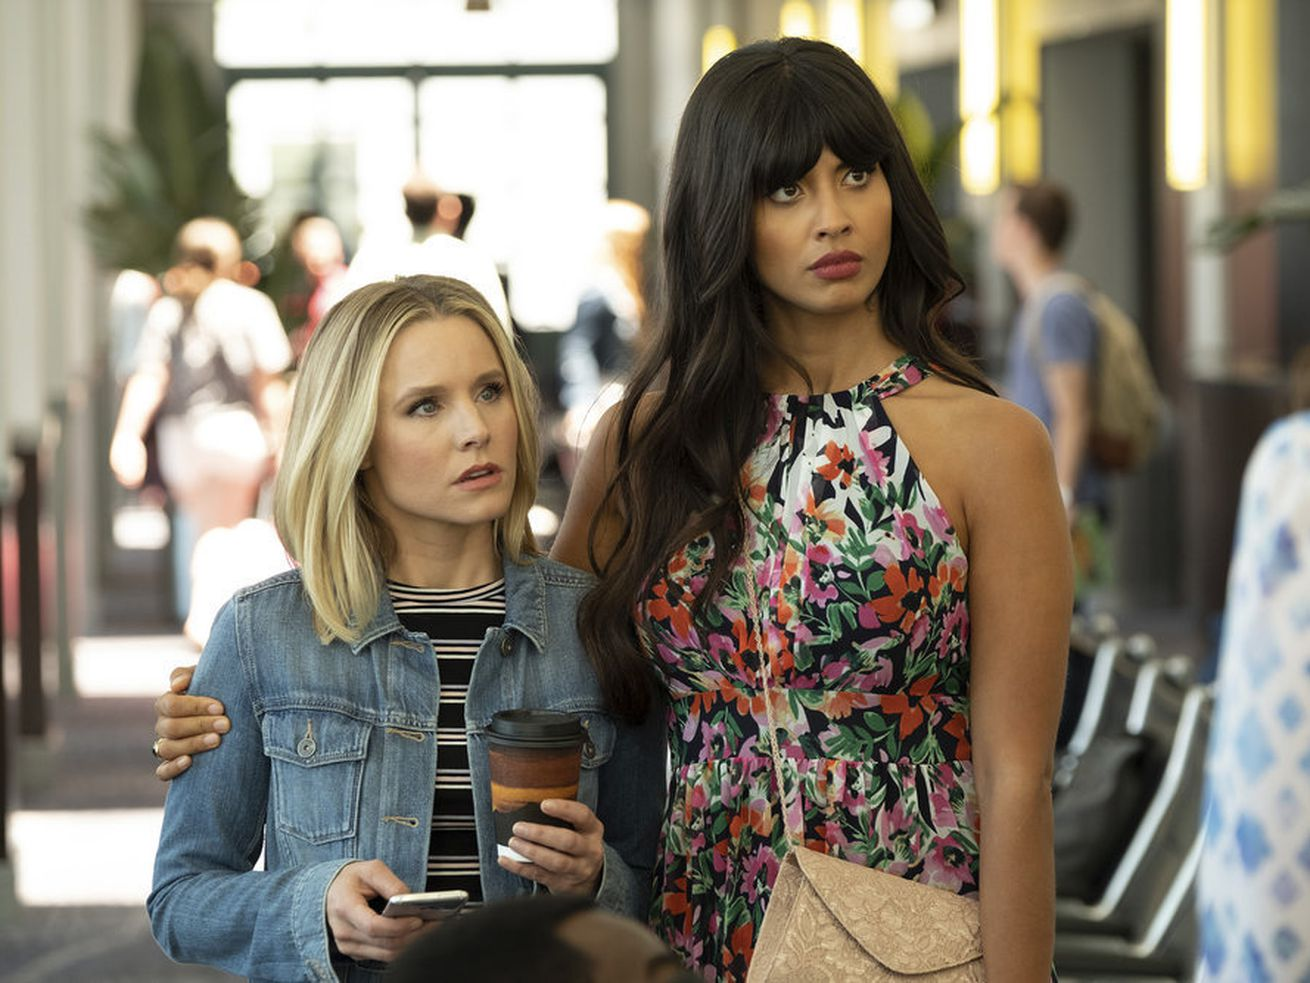 Eleanor and Tahani prepare to occupy separate storylines.